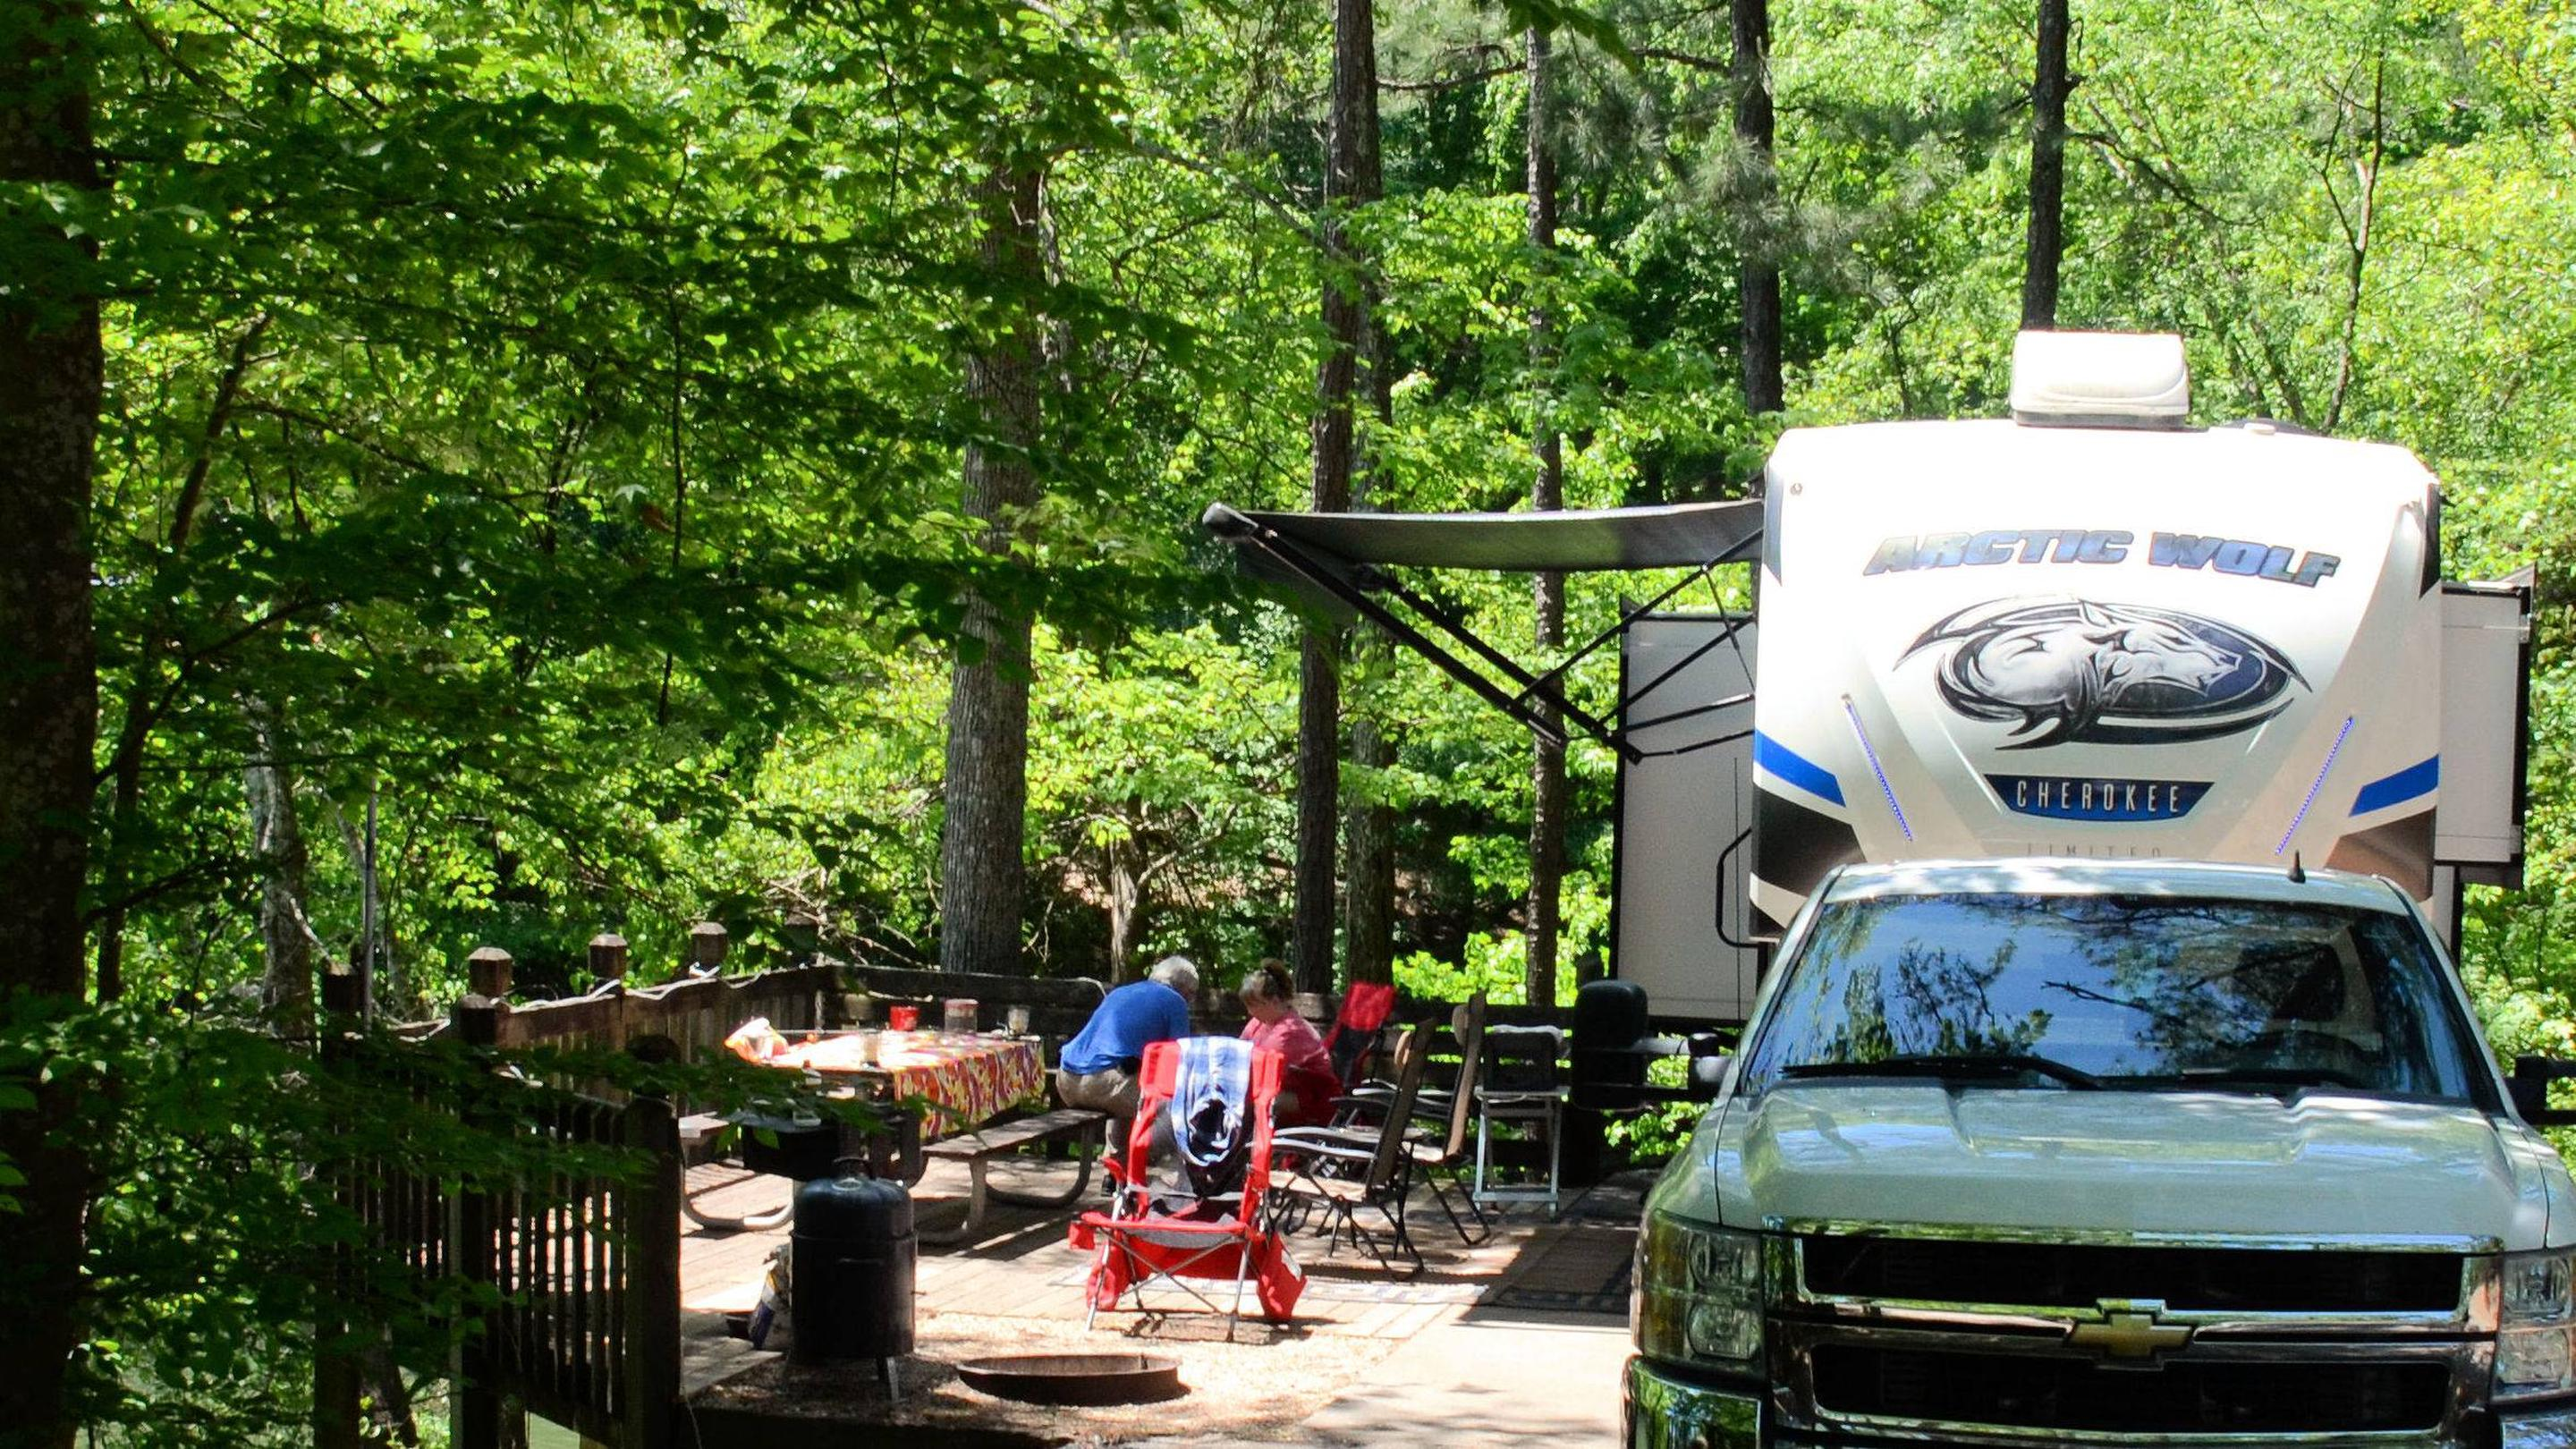 Campsite view, awning-side clearance.McKinney Campground, campsite 141.